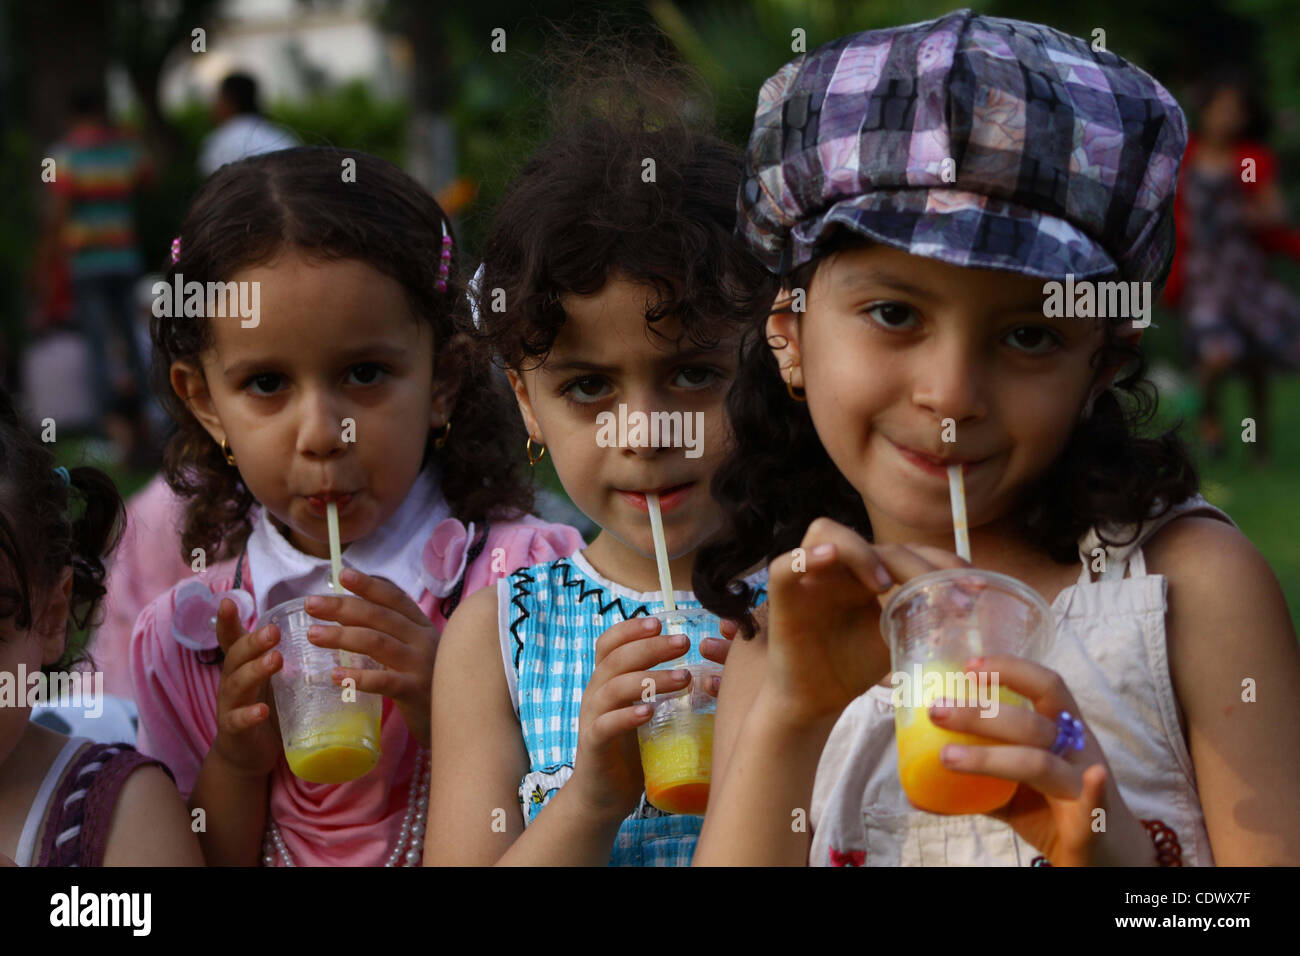 Download Gaza Eid Al-Fitr Feast - palestinian-children-enjoy-a-ride-at-an-amusement-park-on-the-second-CDWX7F  Collection_531472 .jpg